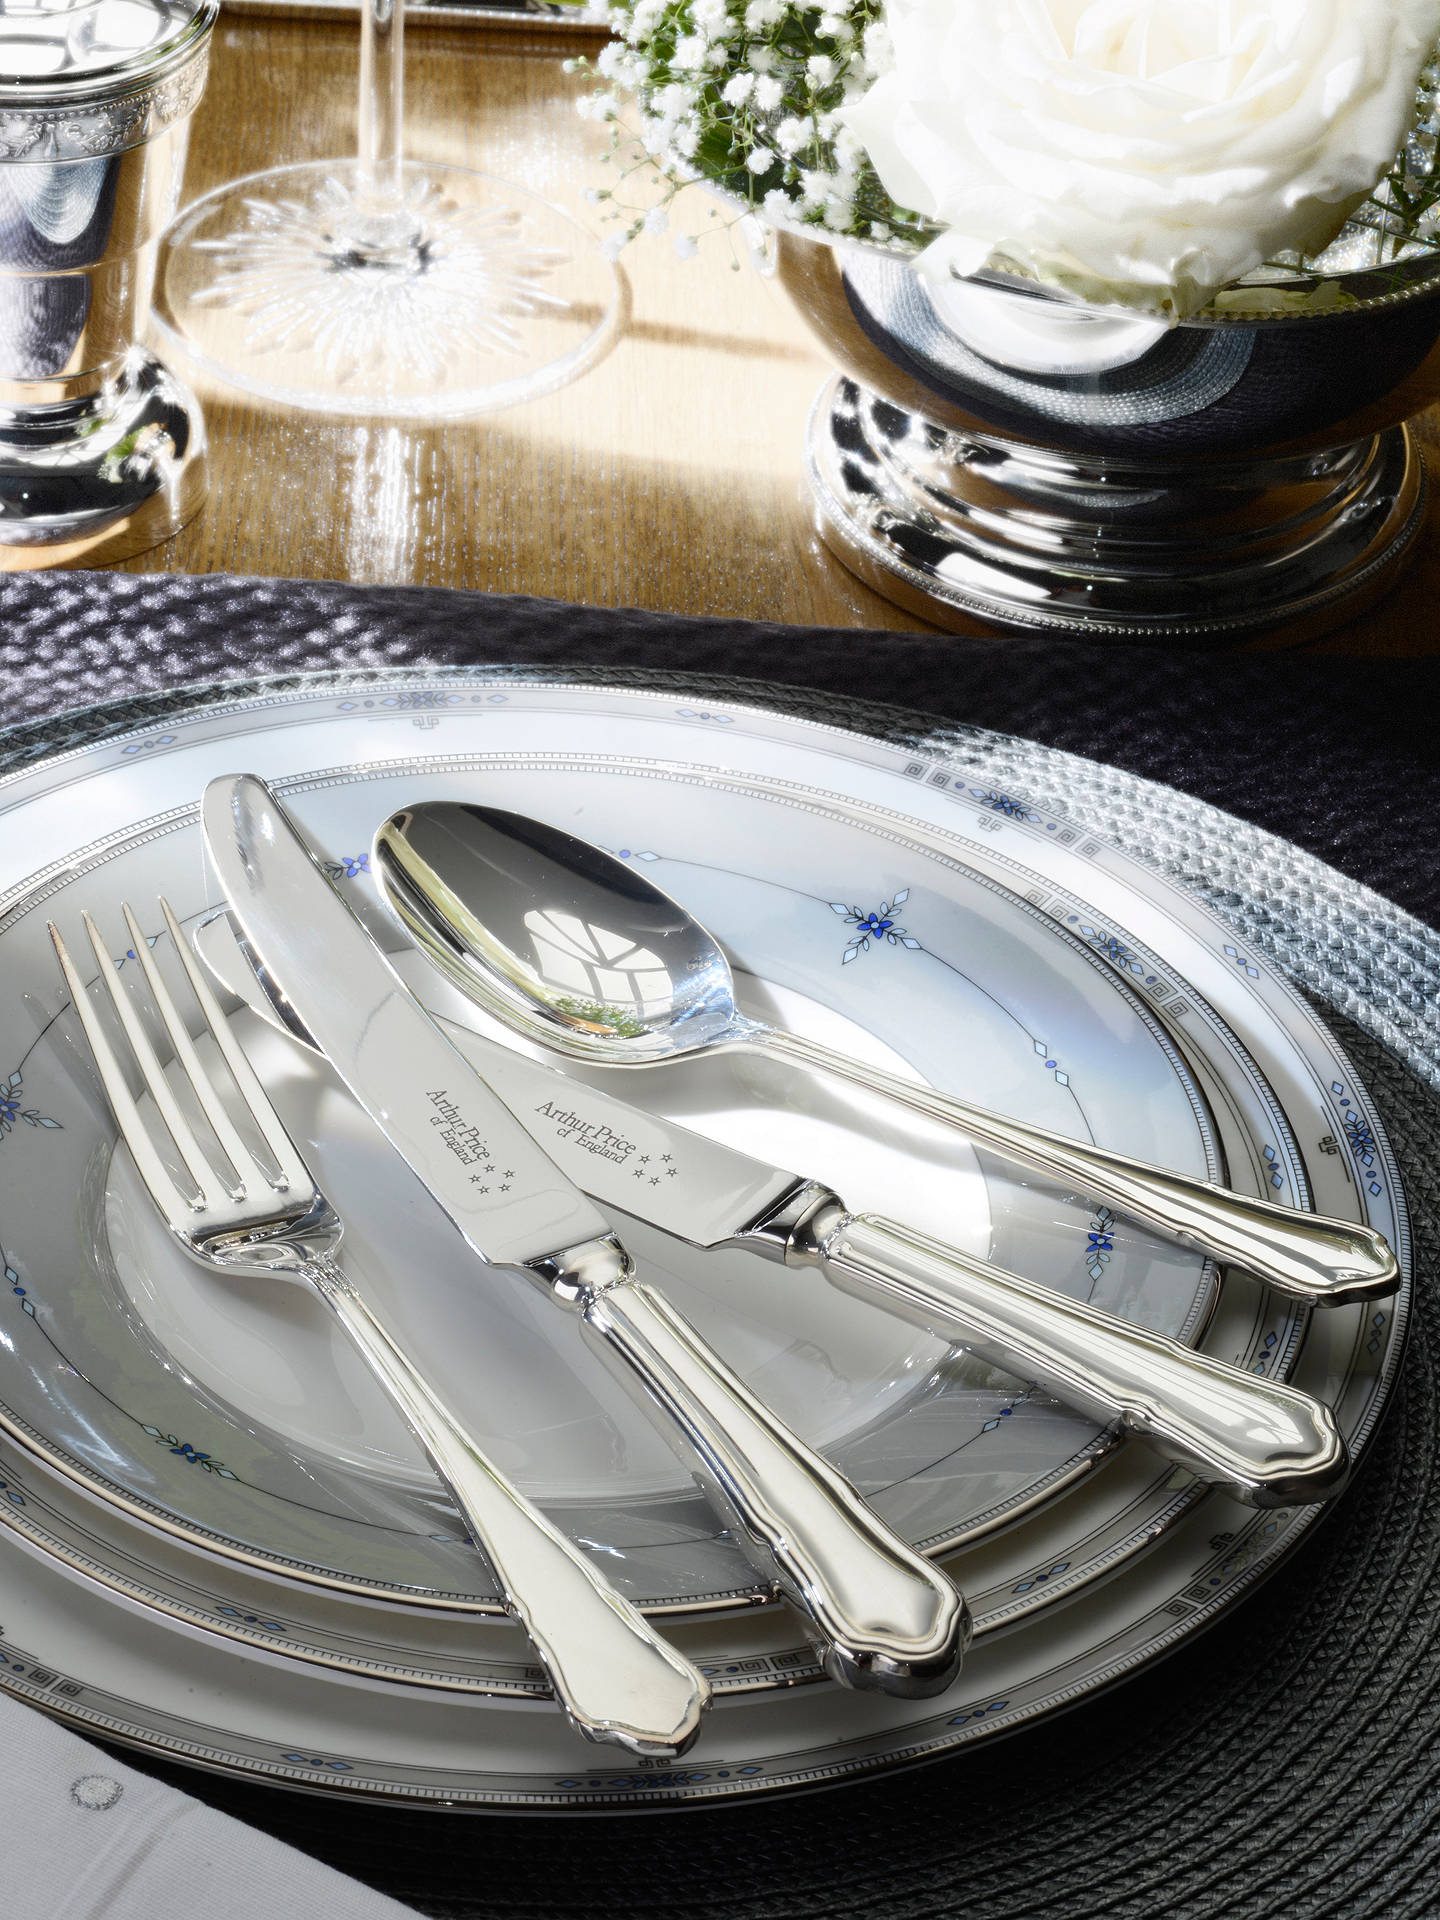 BuyArthur Price Dubarry Cutlery Canteen, Silver Plated, 84 Piece Online at johnlewis.com